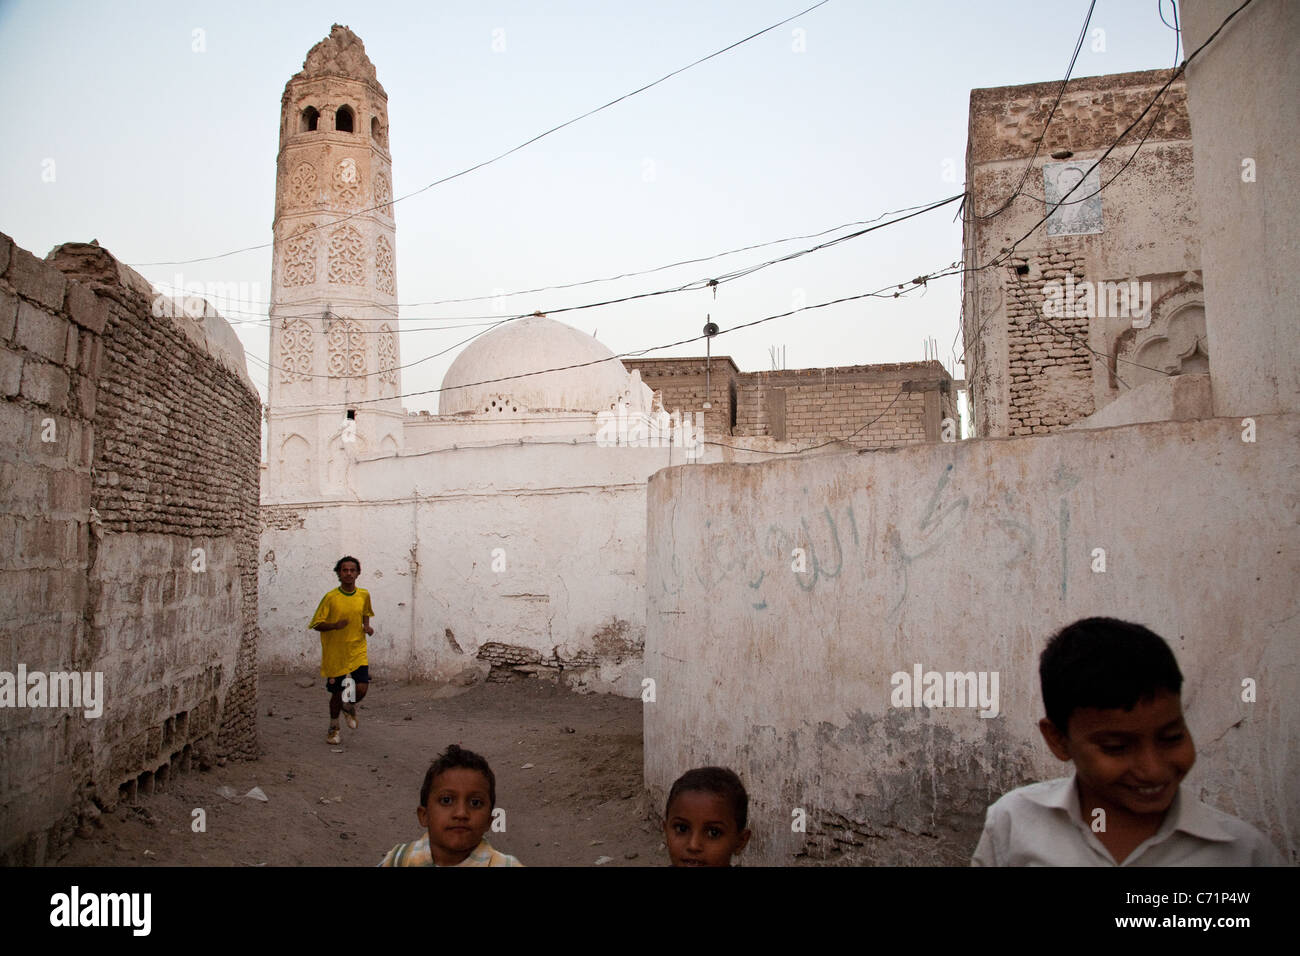 Children in the historical Old Town of Zabid, a UNESCO listed town in Yemen. - Stock Image